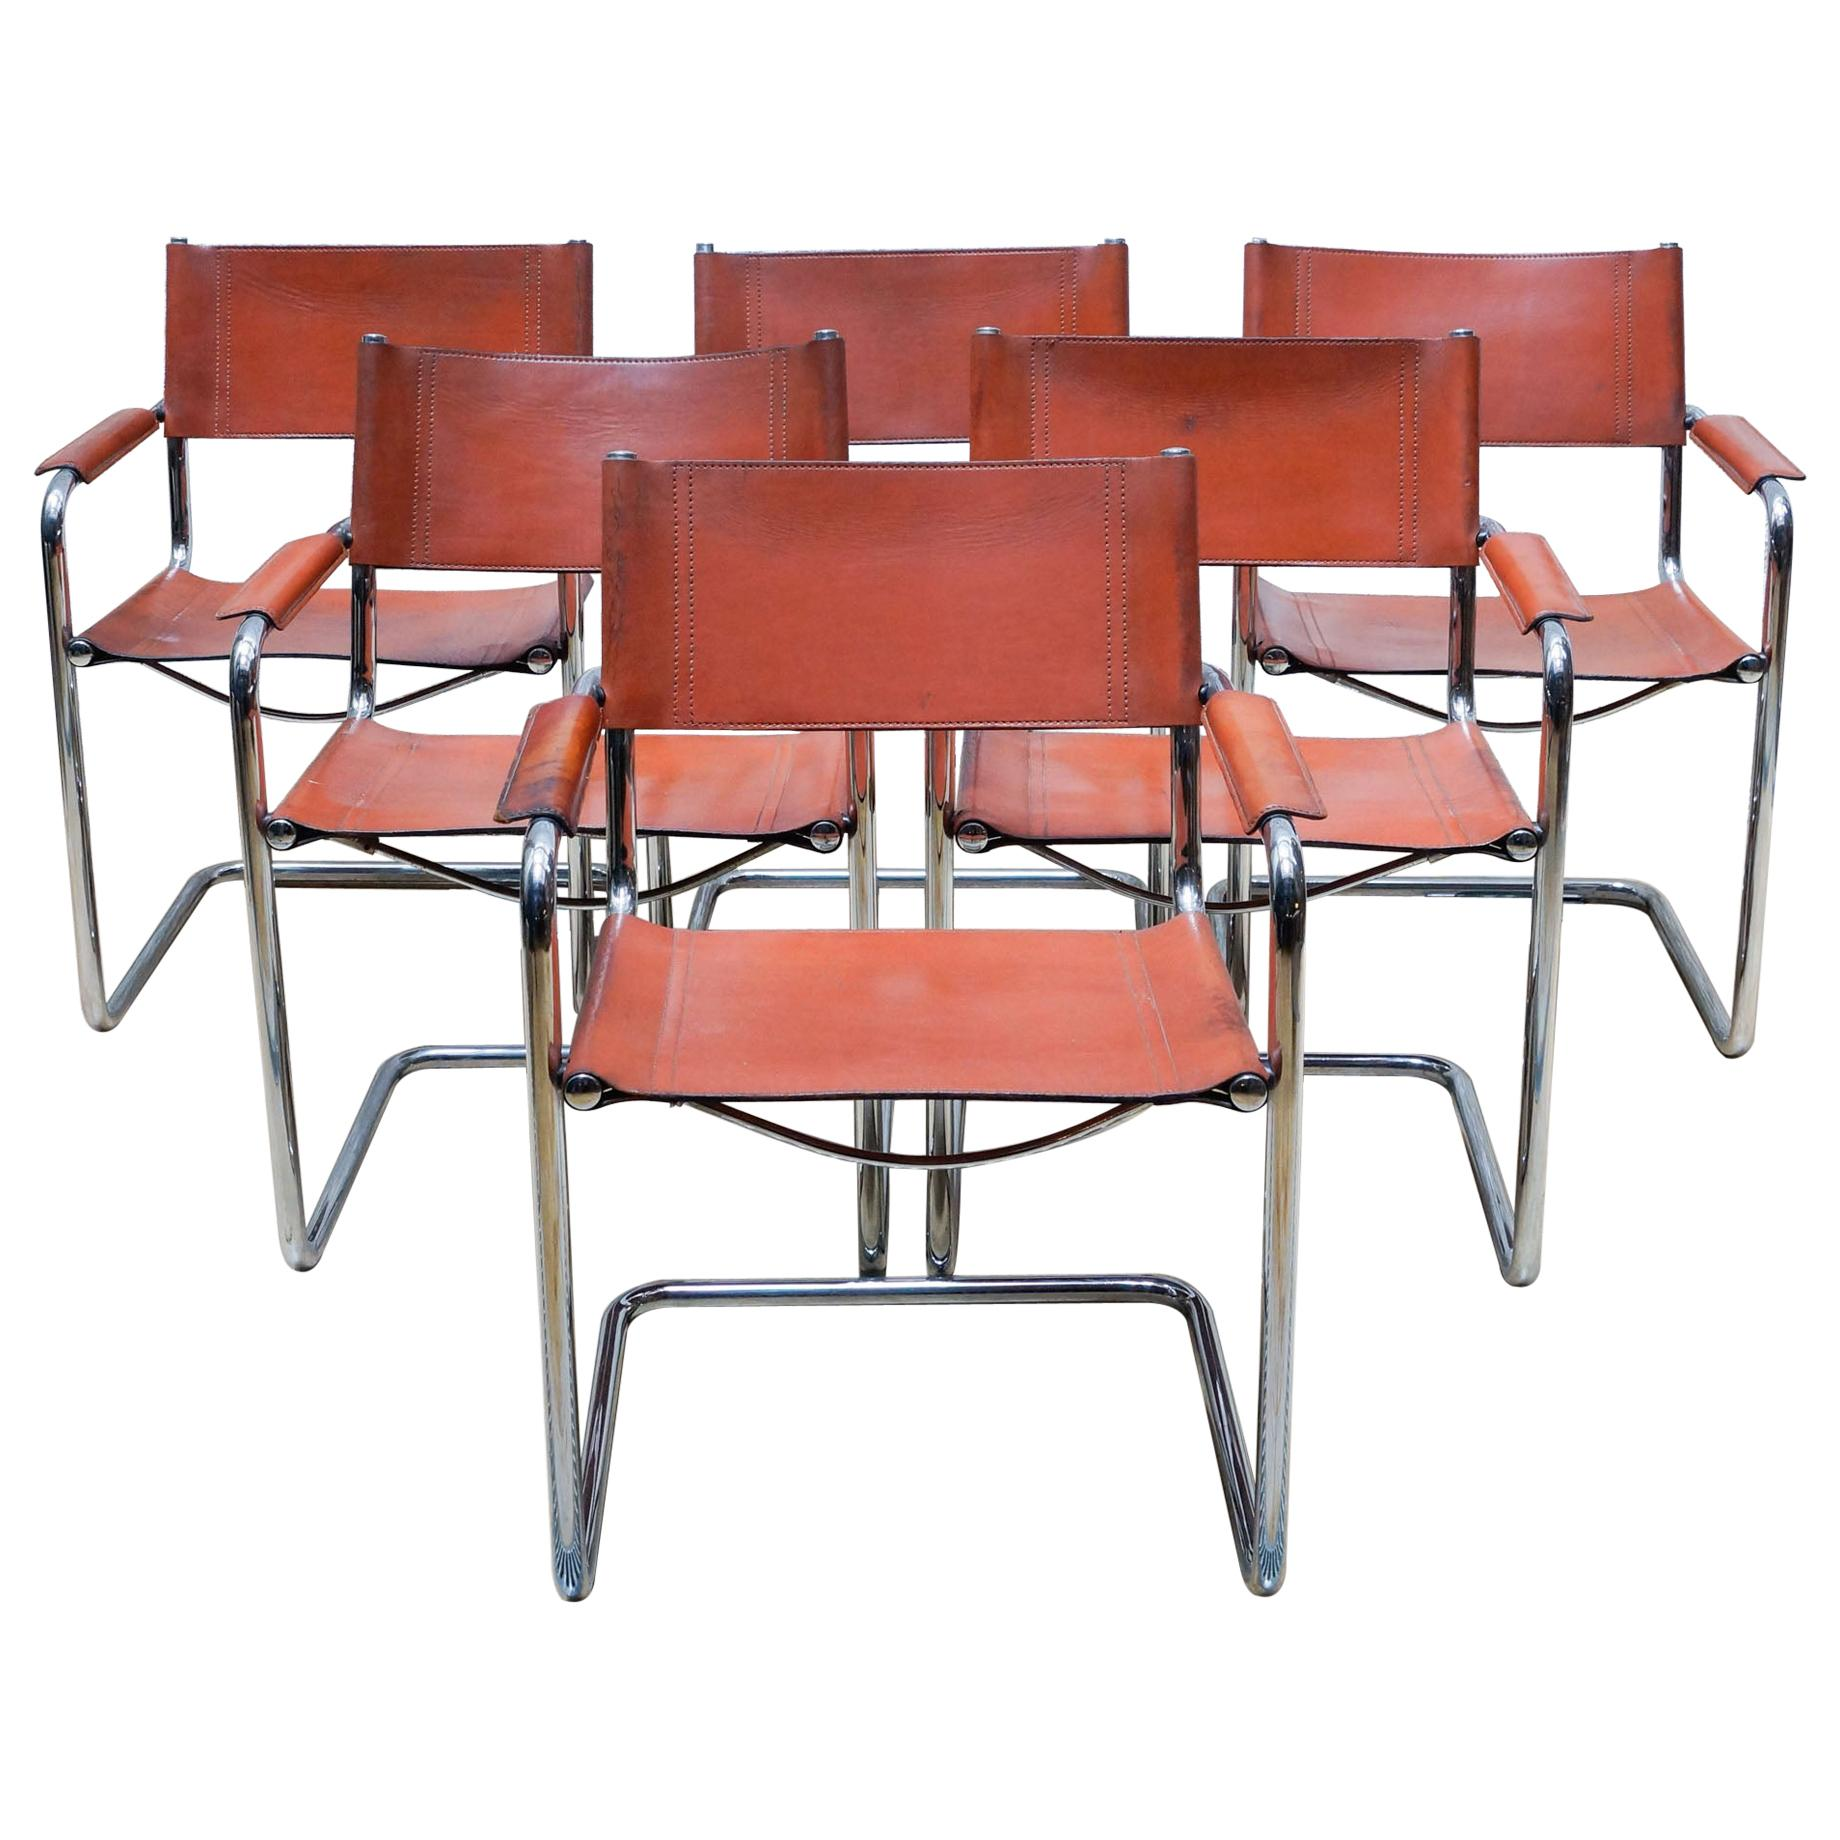 Set of Six Marcel Breuer Metal and Leather MG5 Chairs by Matteo Grassi